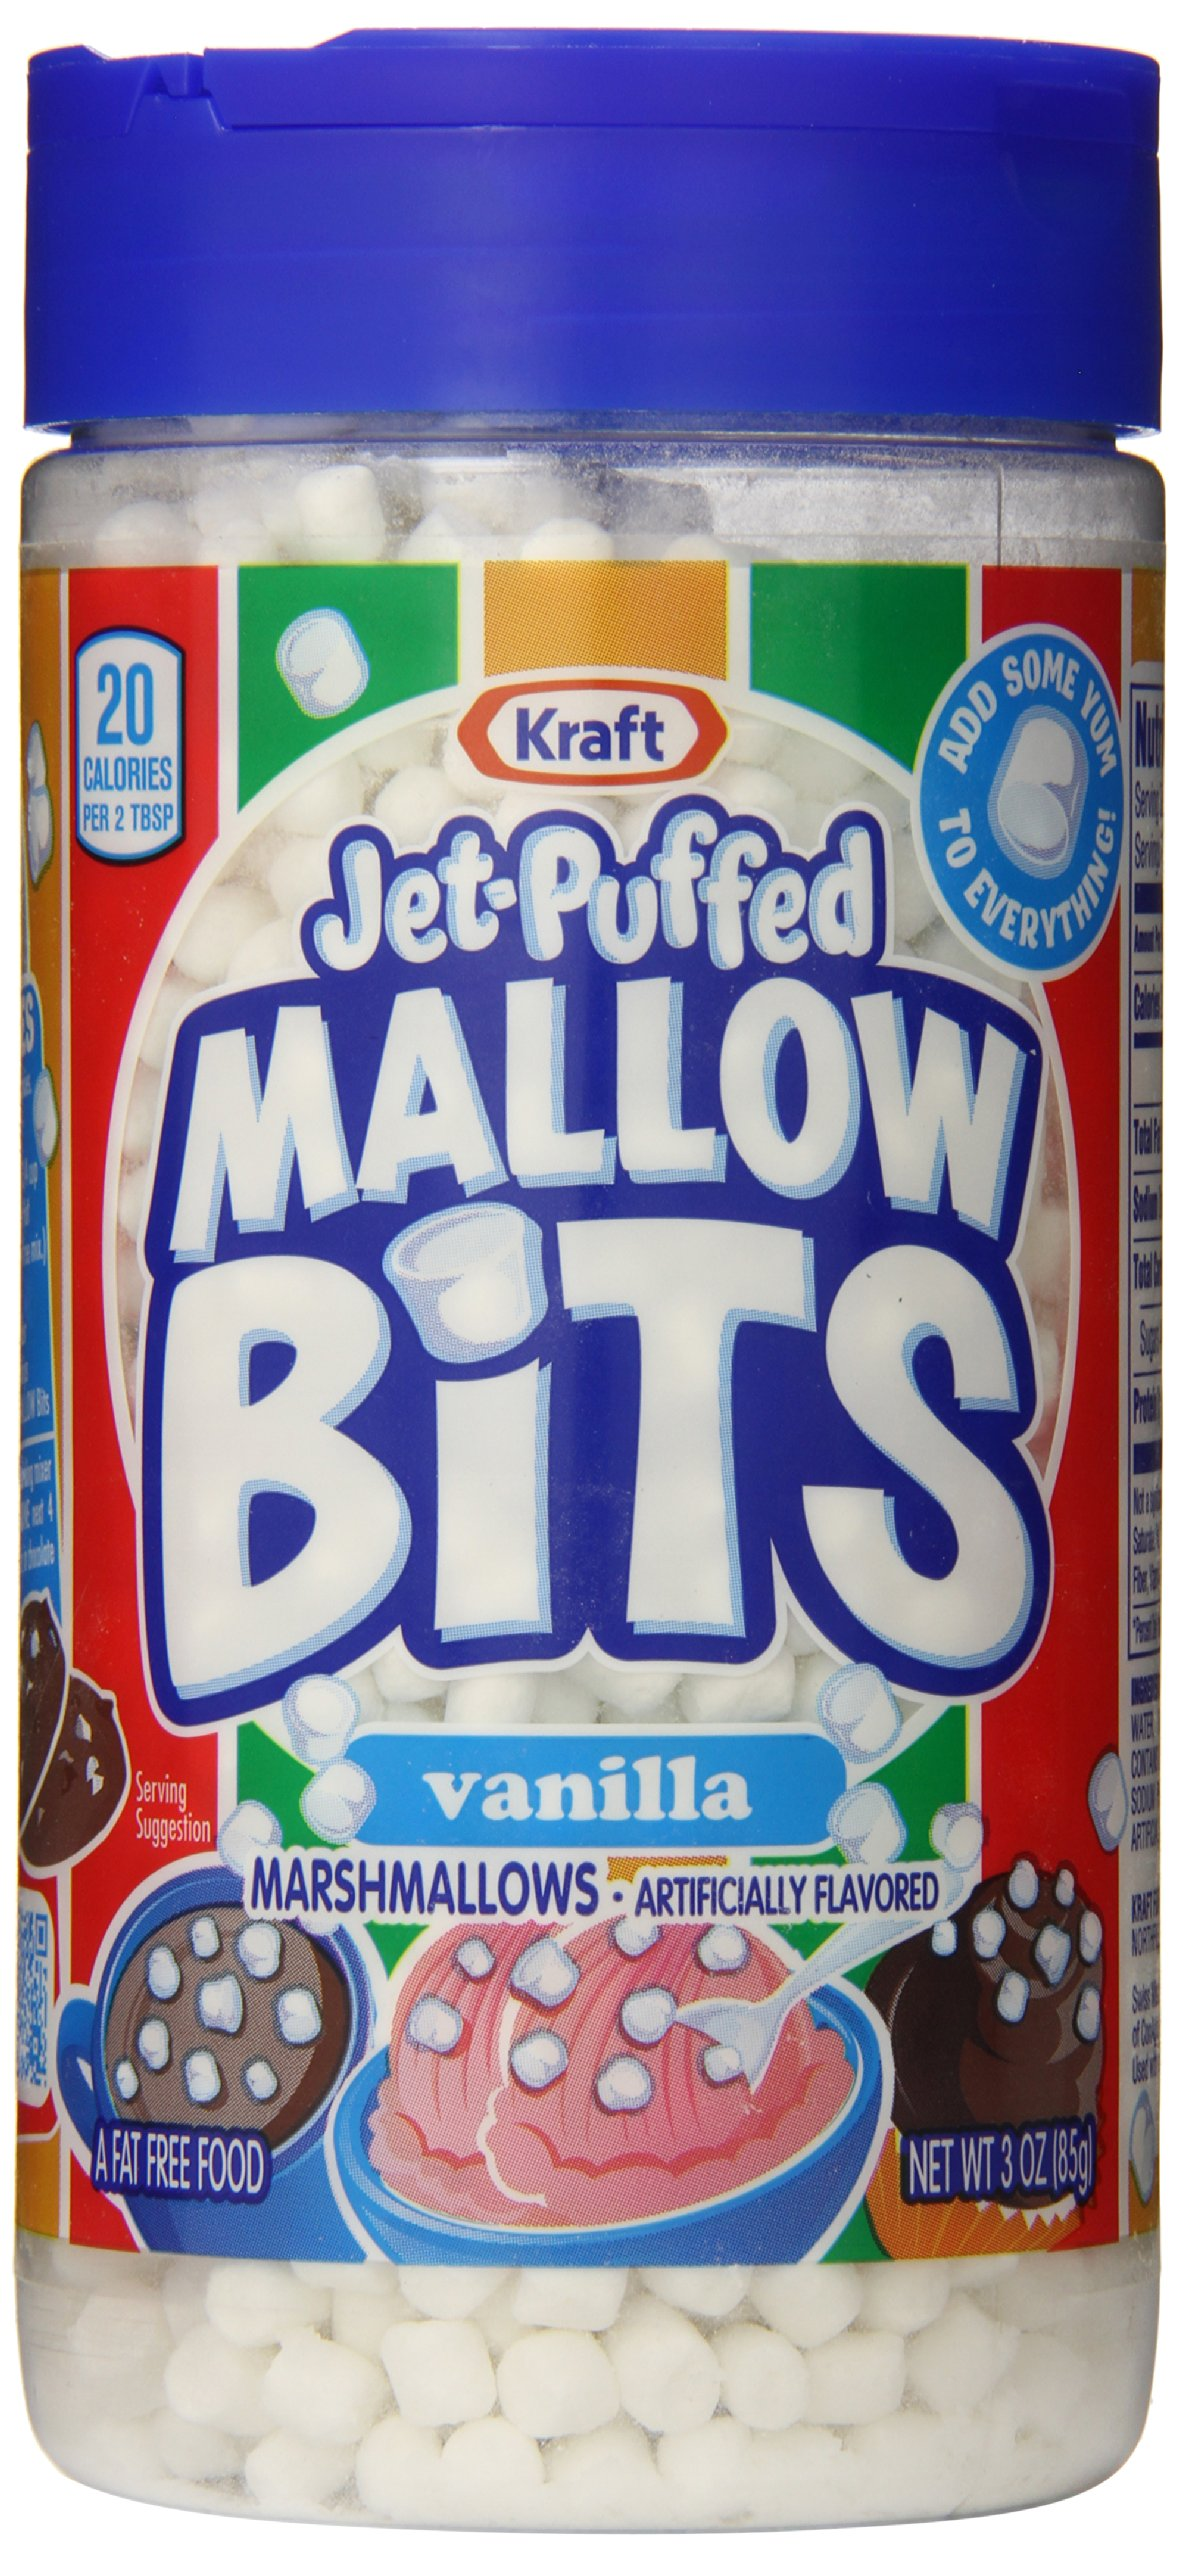 Jet-Puffed Marshmallow Bits, Vanilla, 3 Ounce Container (Pack of 6)